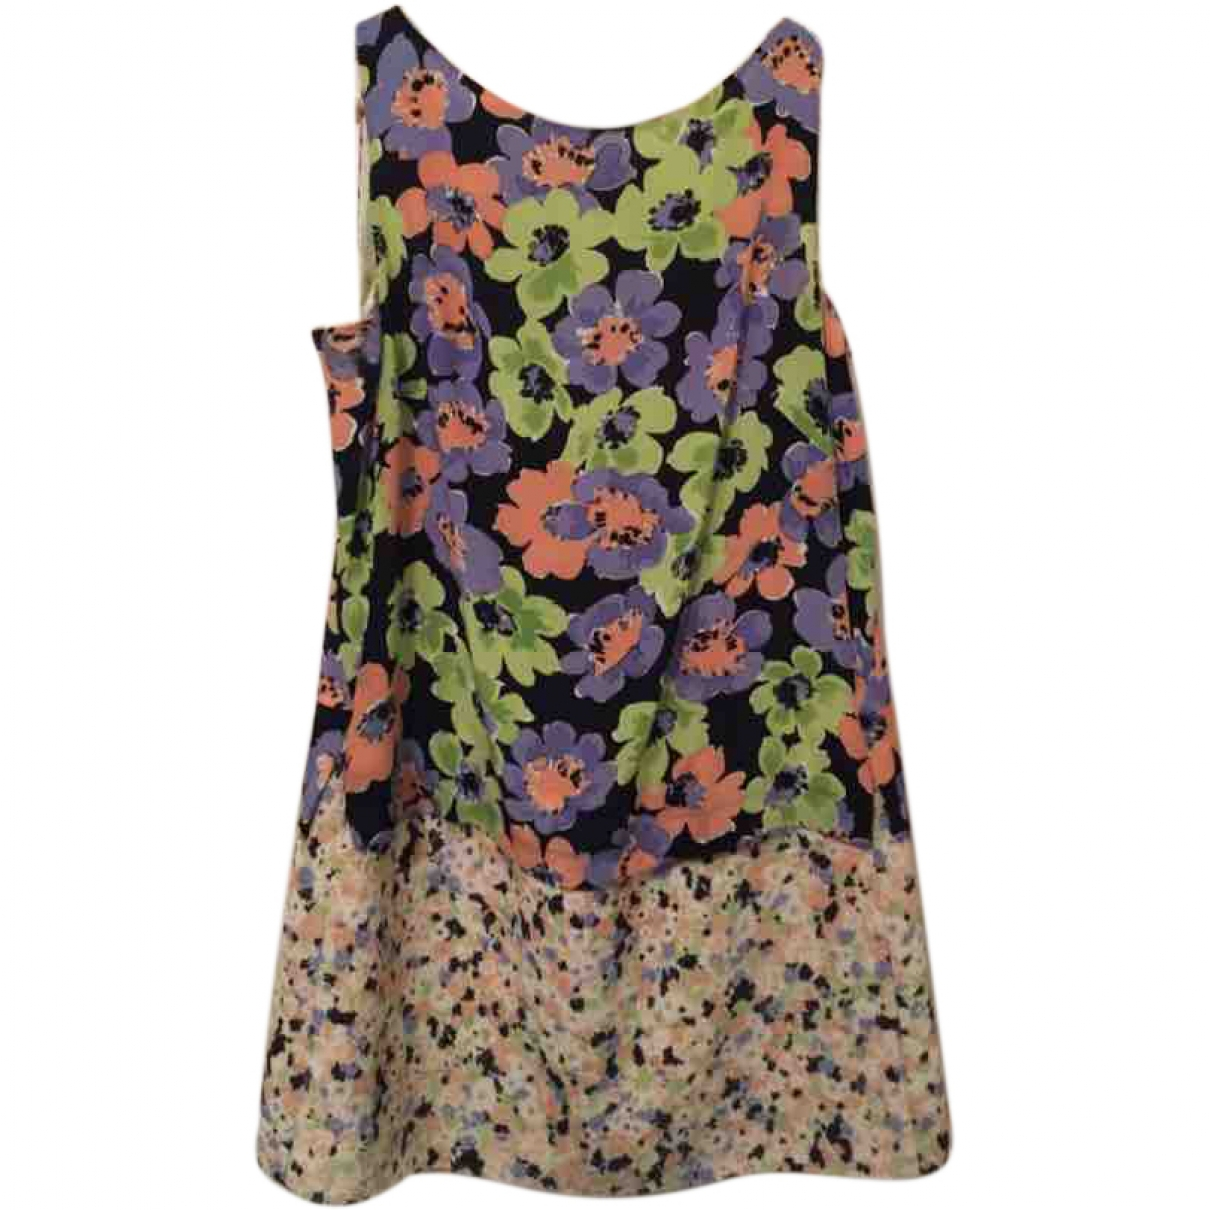 Moschino \N Multicolour dress for Women 44 IT